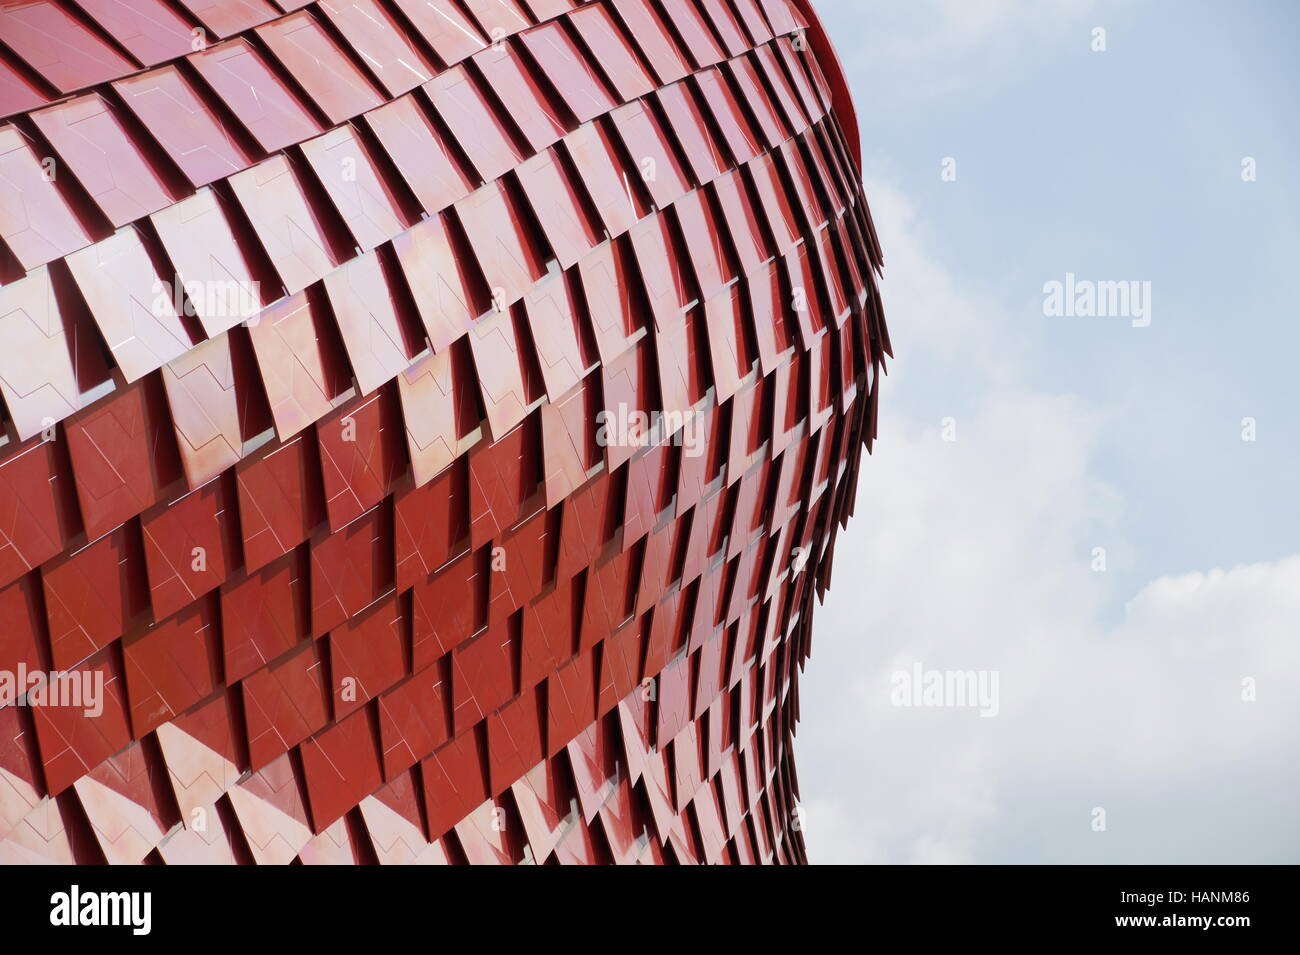 Detail of red modern ceramic tiles roof stock photo royalty free detail of red modern ceramic tiles roof dailygadgetfo Choice Image